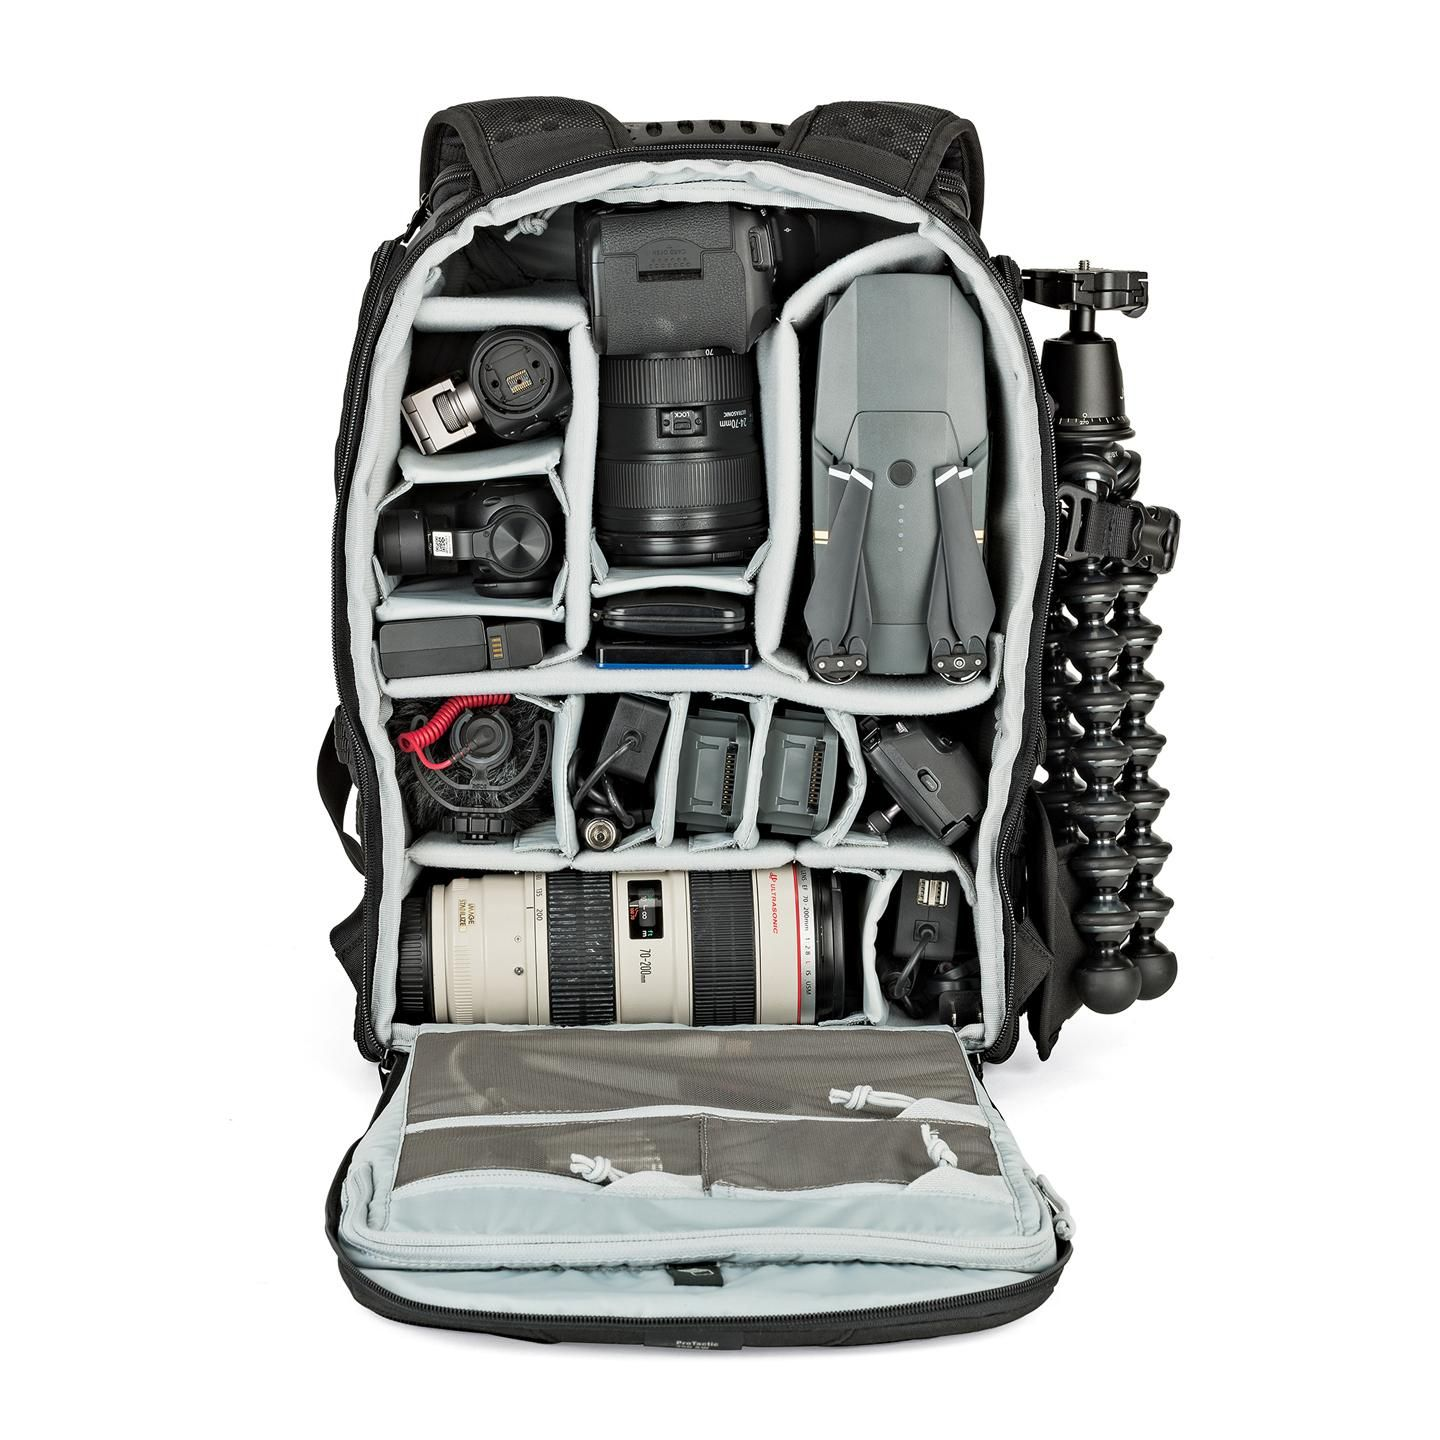 190 Amazon Com Protactic 450 Aw Camera Backpack From Lowepro Professional Protection For Your Camera G Camera Backpack Dslr Backpack Camera Gear Storage